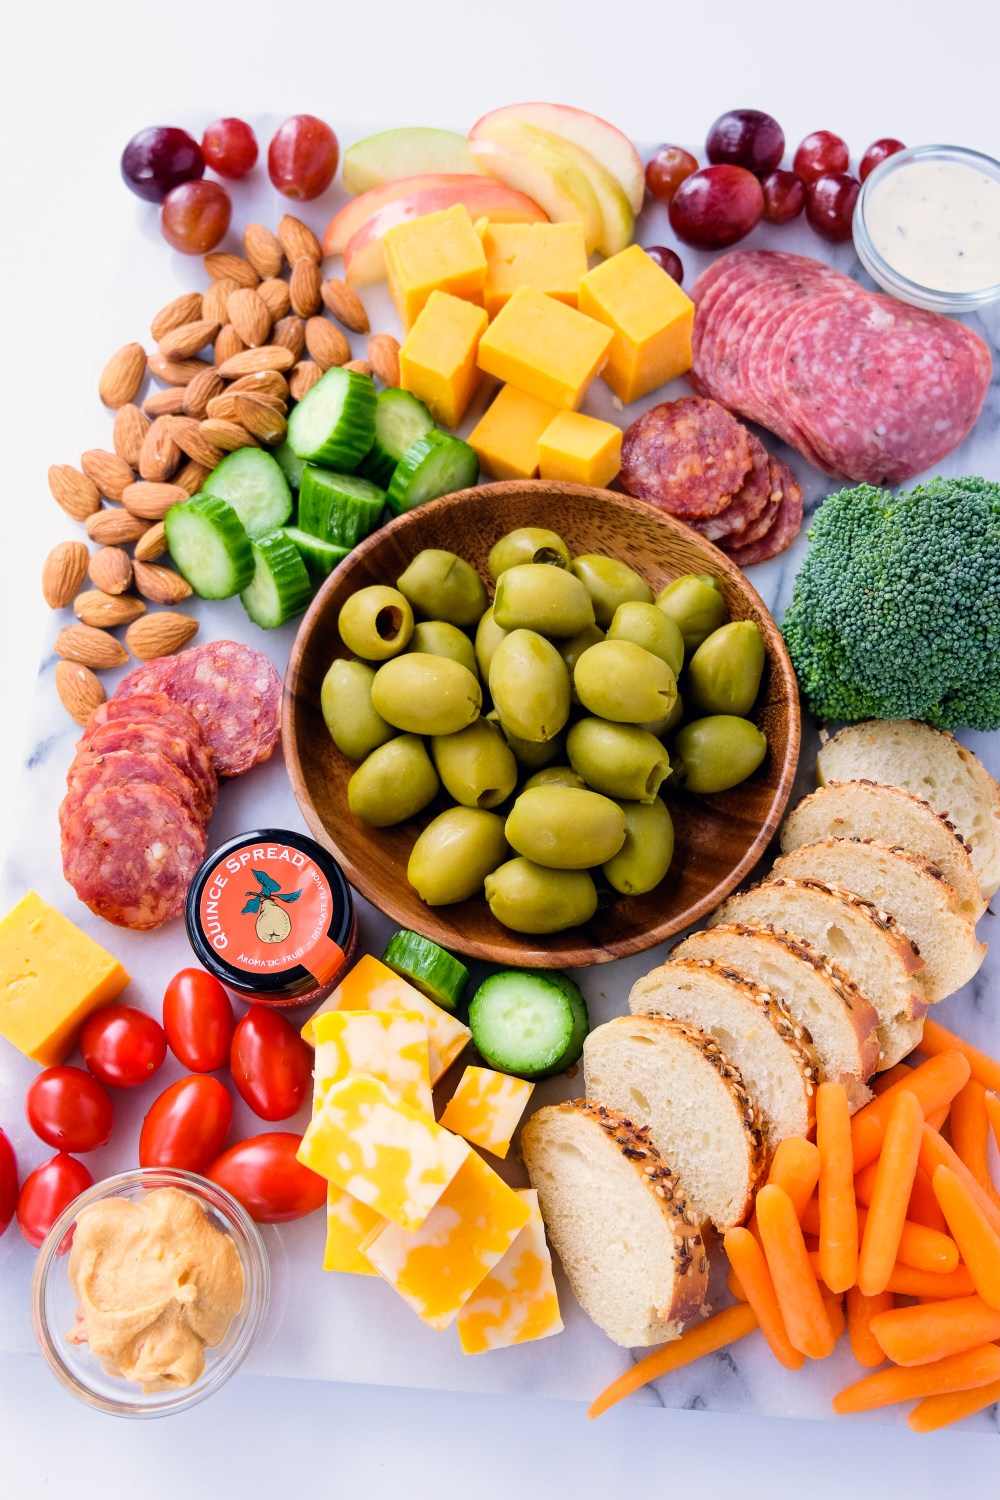 Spring Appetizer Board with Pearls Specialties Jalapeno Stuffed Olives